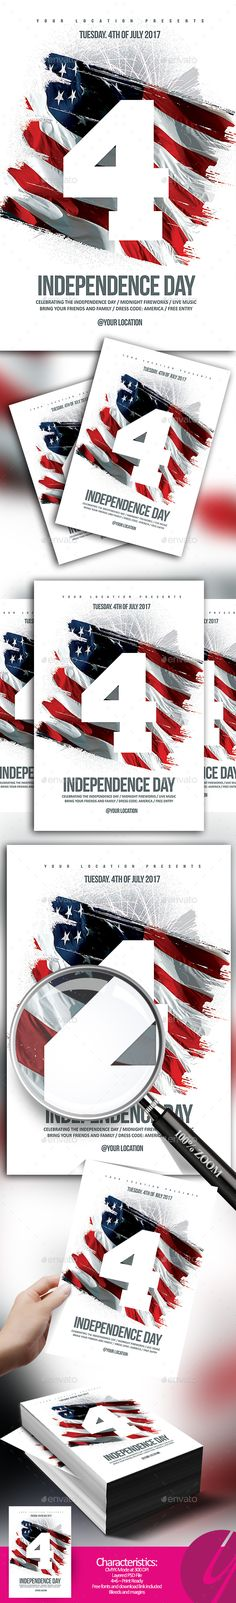 Independence Day Flyer | Flyer Template, Font Logo And Logos